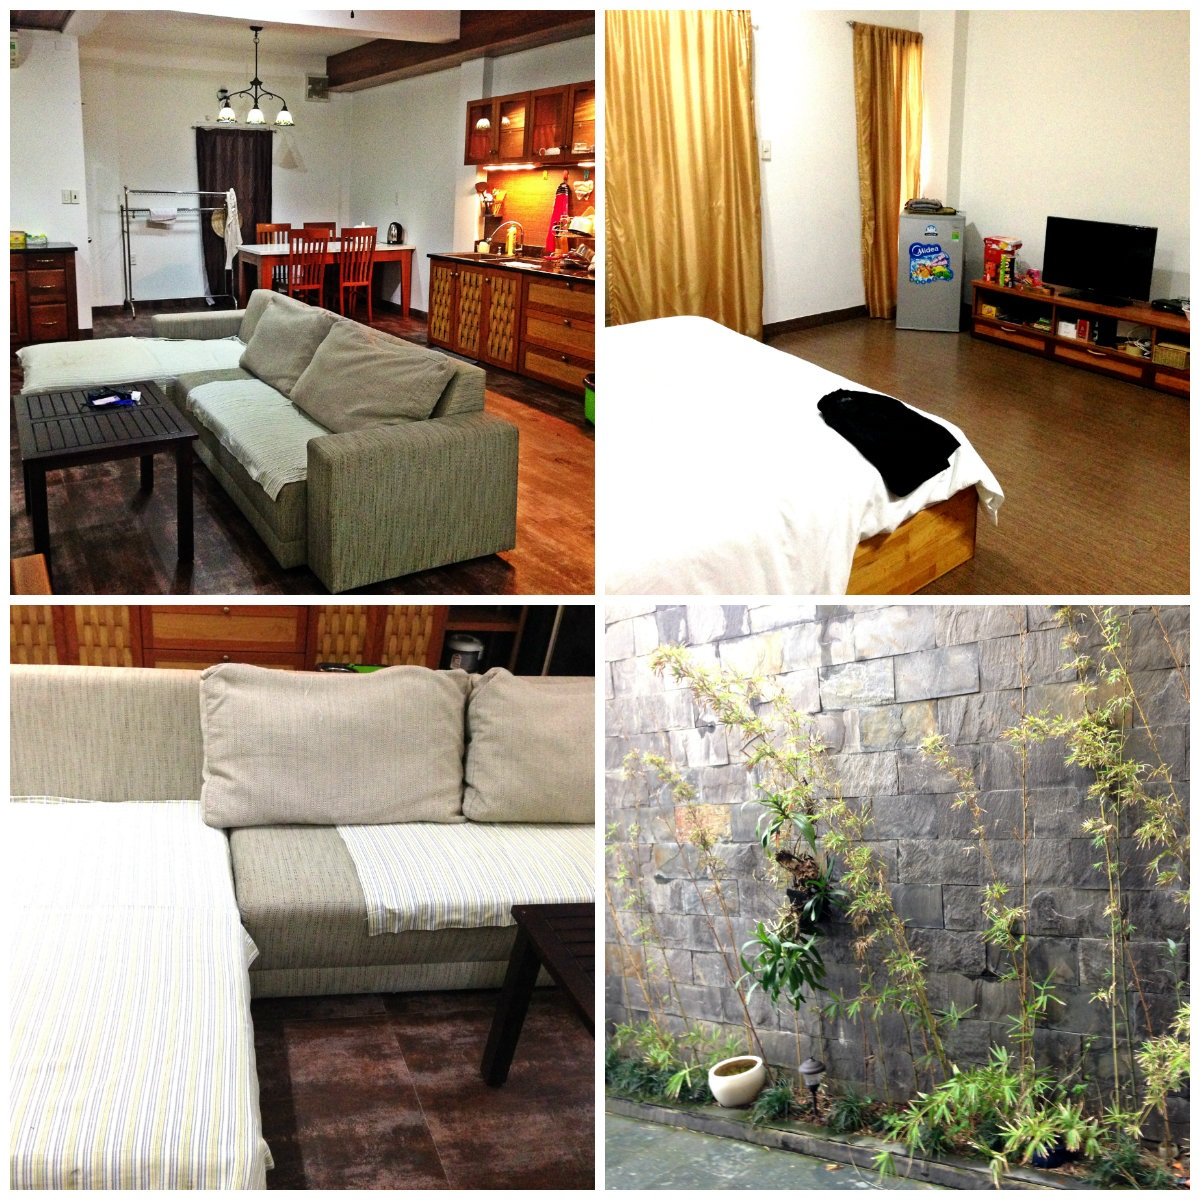 1 bedroom apartment for rent in An Thuong area, modern interior